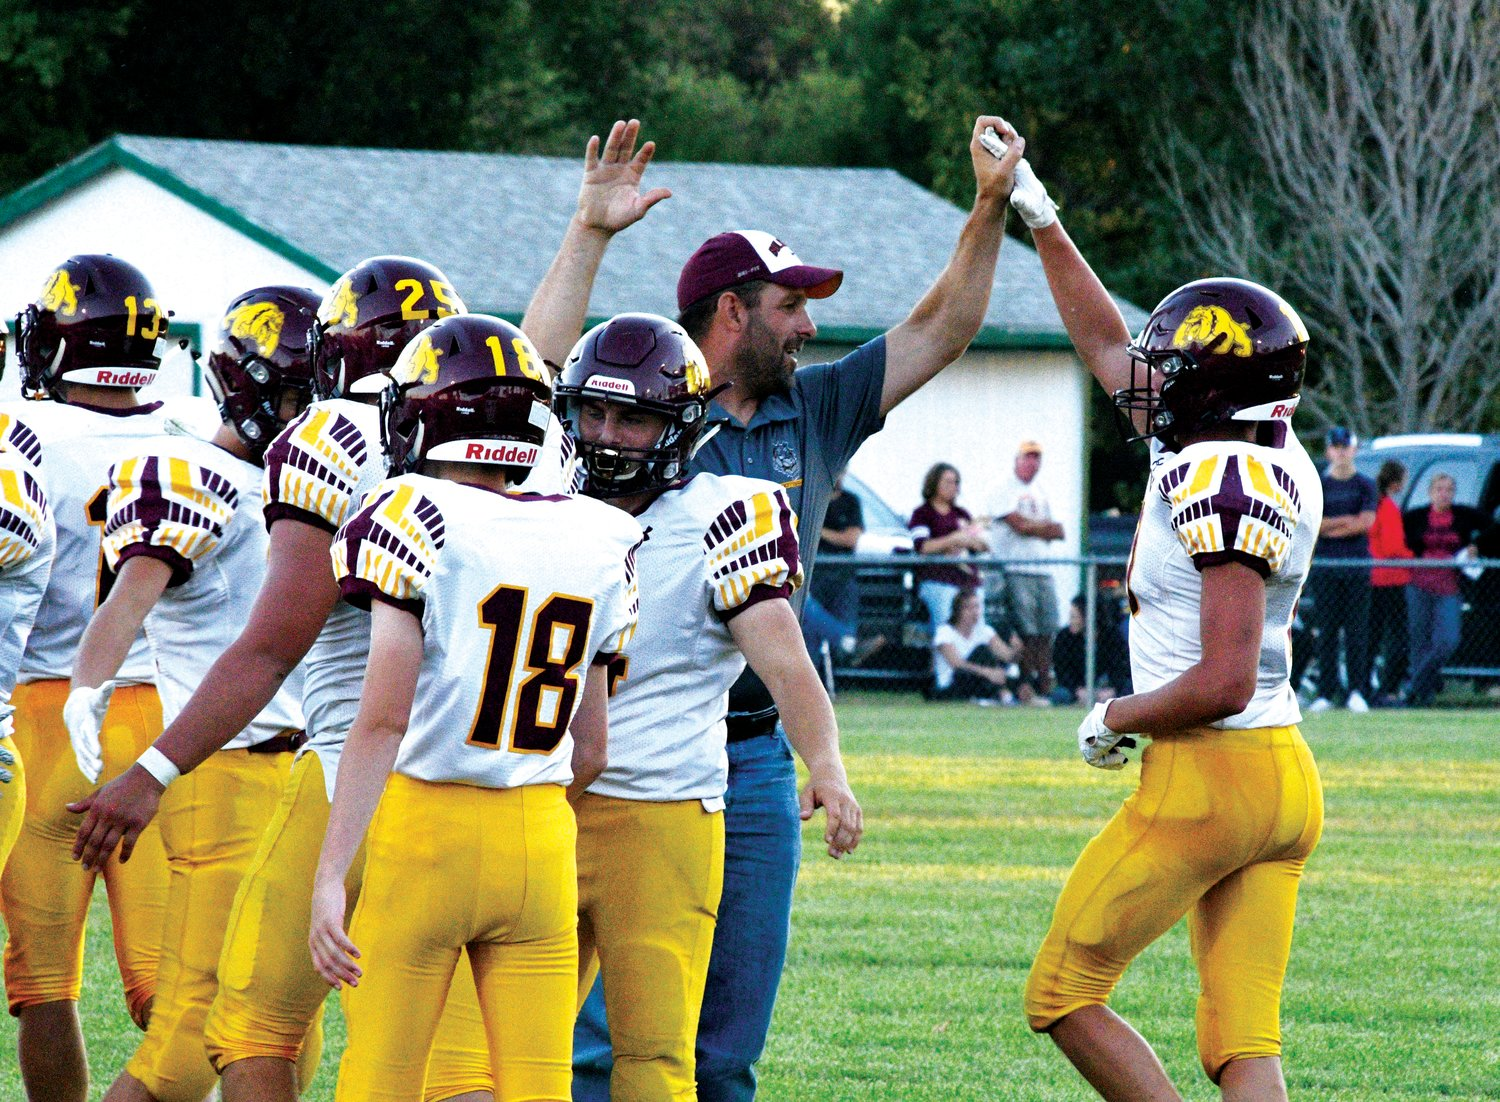 Coach Dan Wilkinson congratulates players coming off the field to a big win over the Cardinals in Dell Rapids.